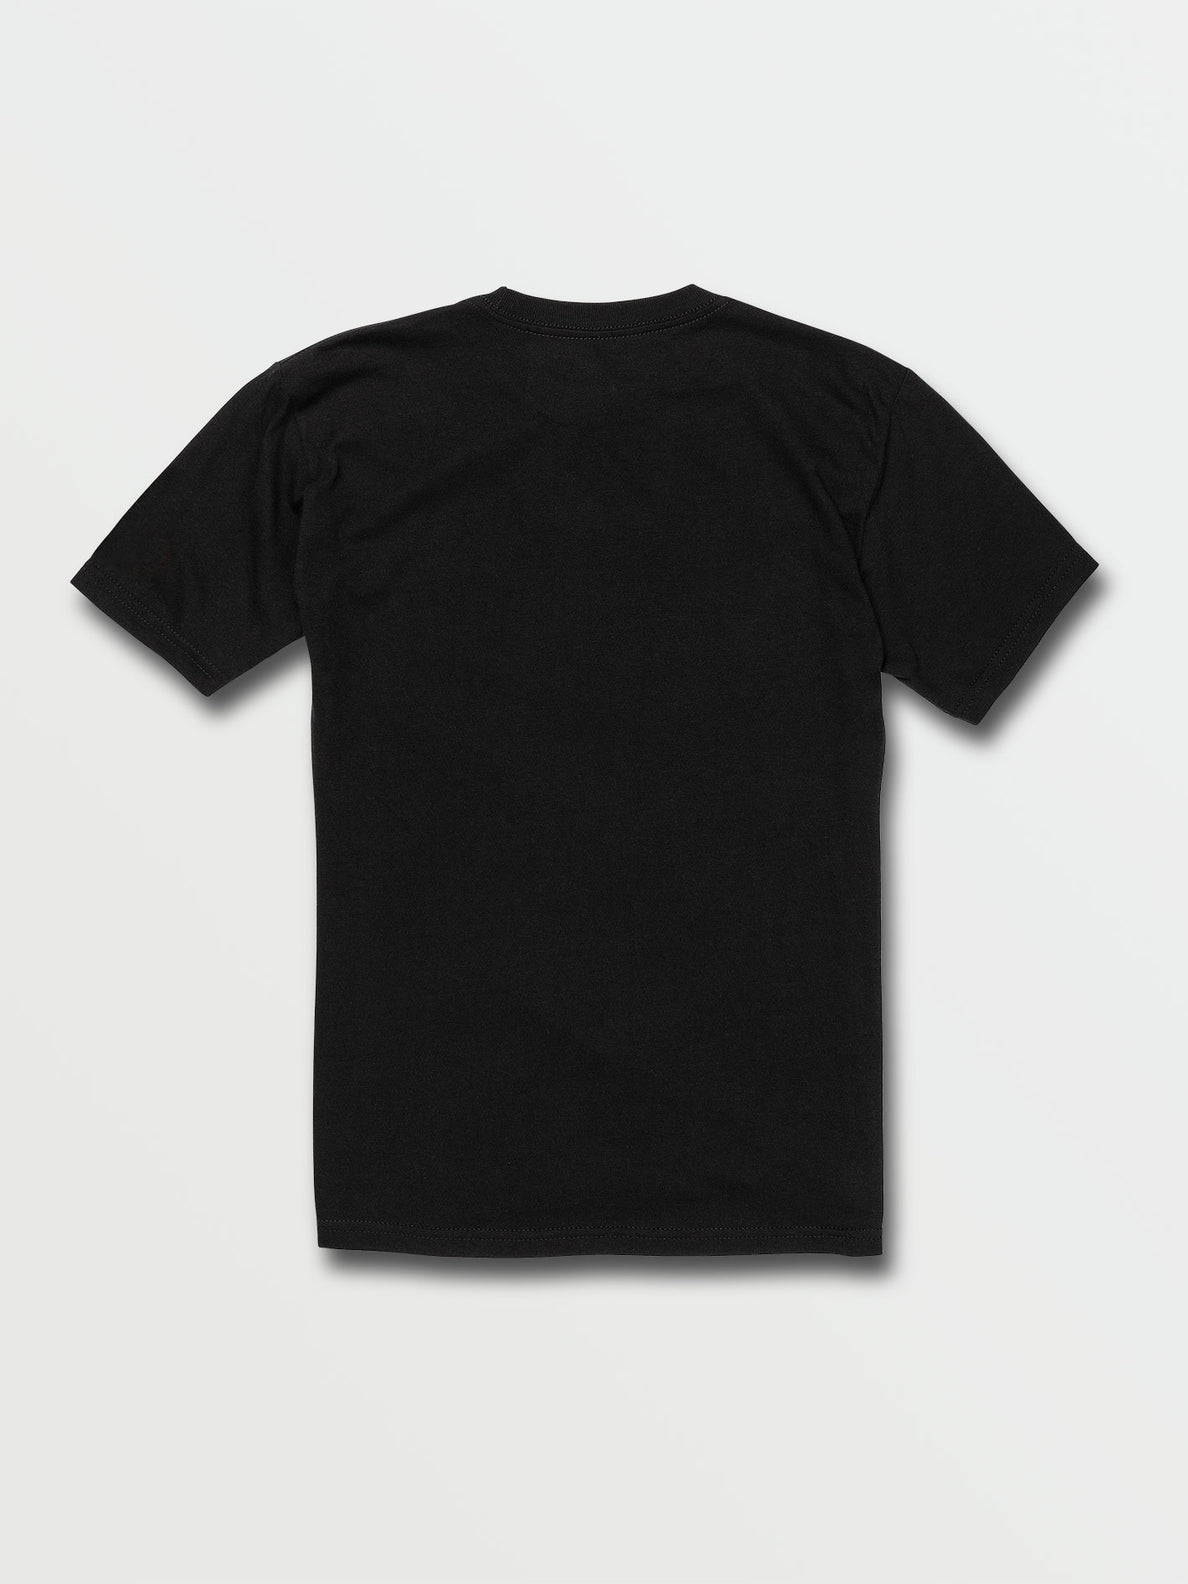 Voltrude S/s Tee Youth Black (C3532002_BLK) [B]